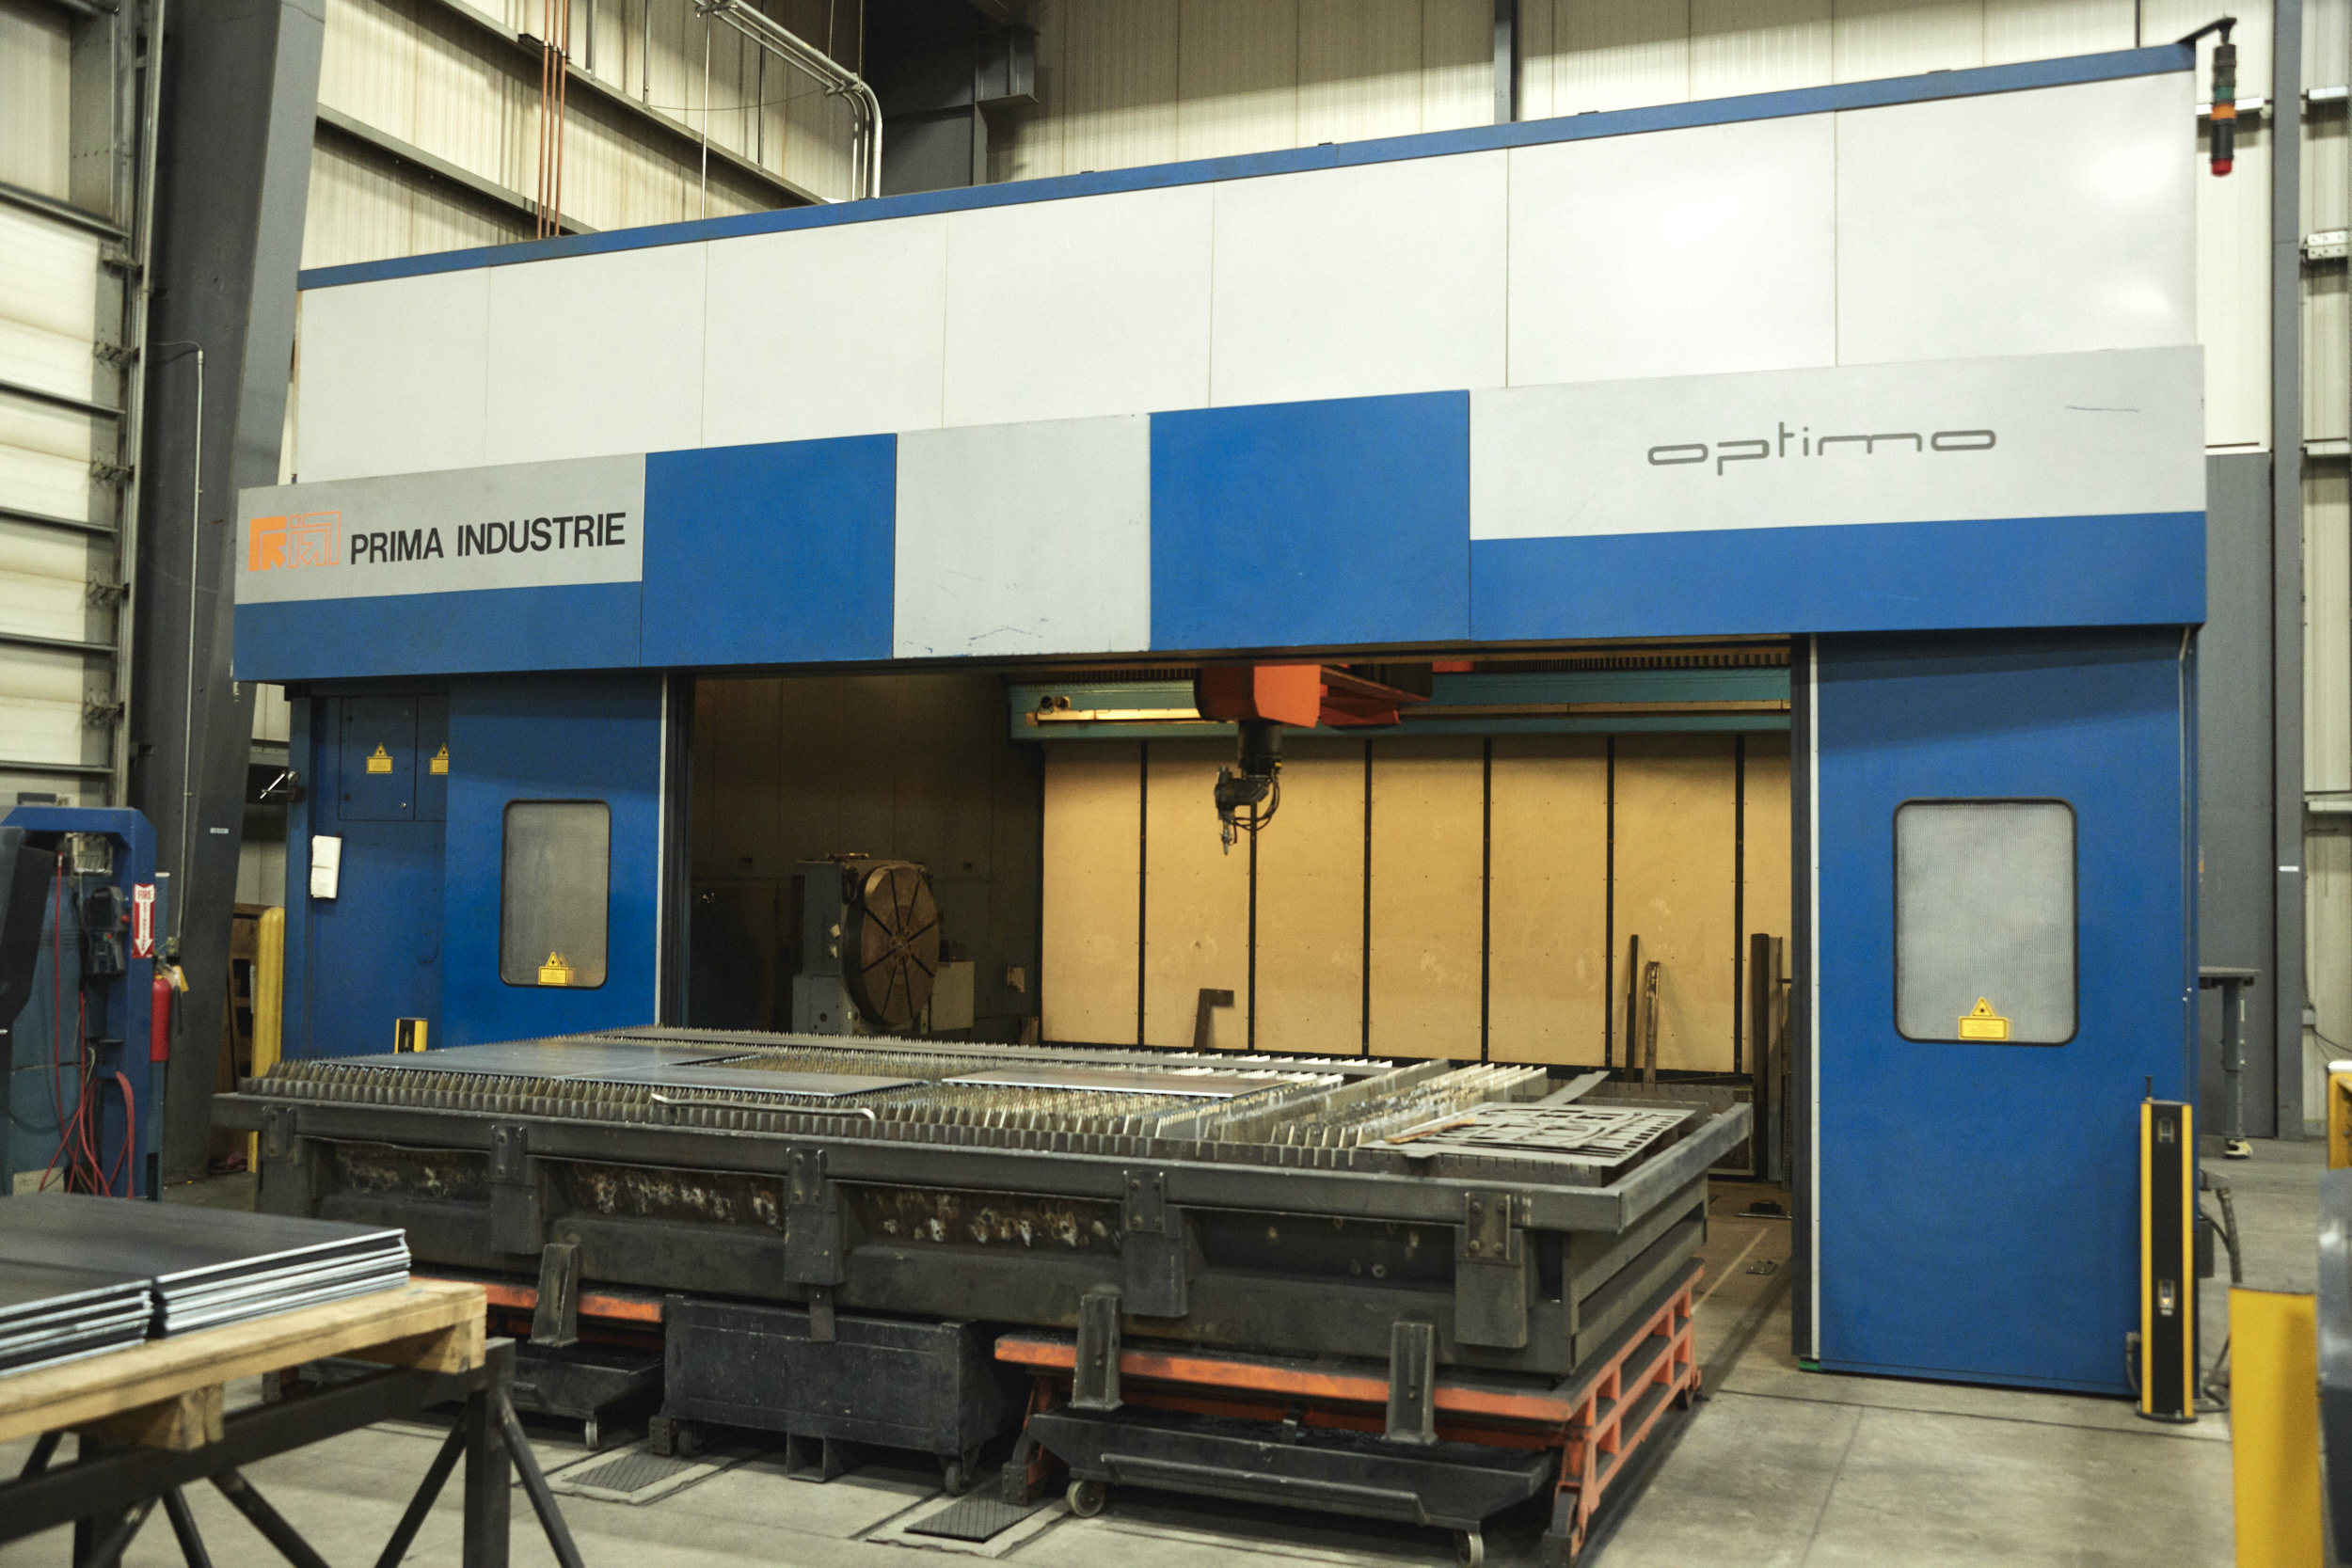 "Prima Industries Optimo 5 kW 5 Axis Laser   177"" X, 98"" Y, 40"" Z, Integrated Rotary Table"